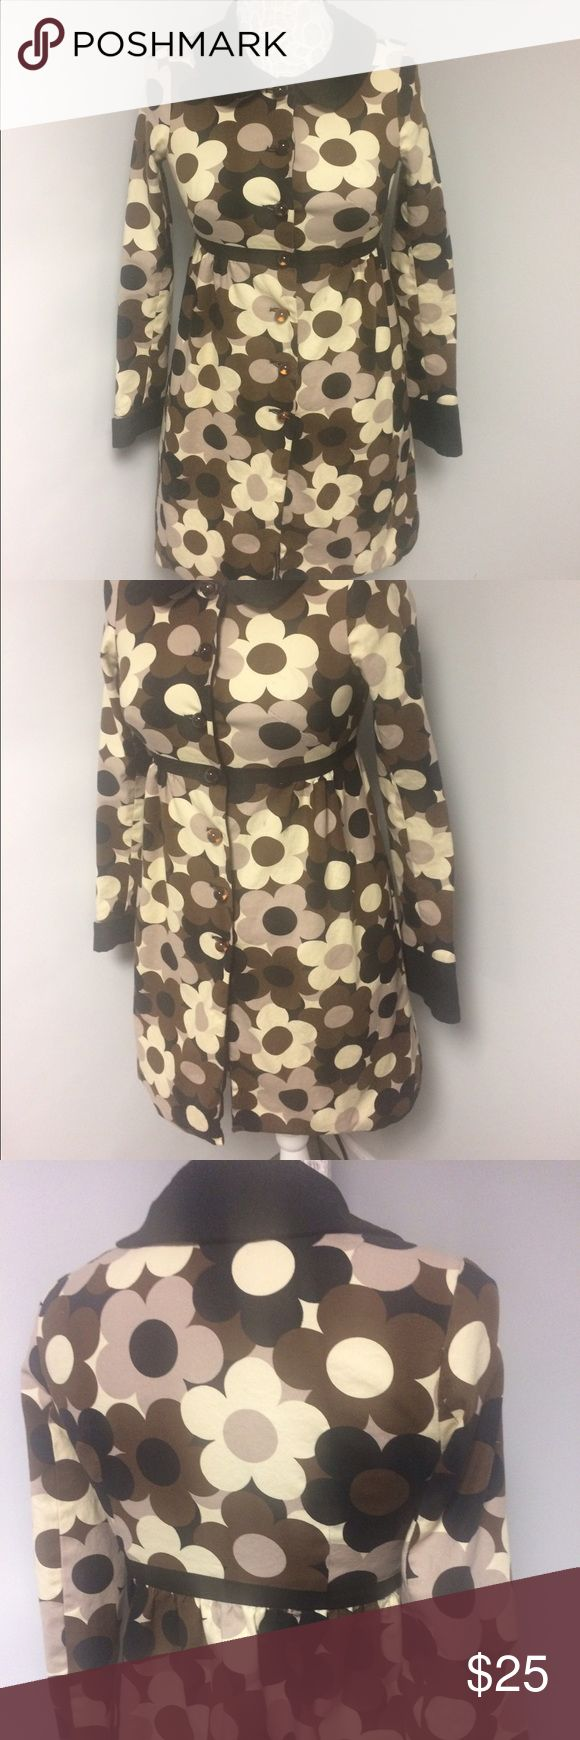 Betsey Johnson coat Floral Print trench coat. Mannequin measures 36 chest and 28 waist. Reposh, there are a few marks on the flowers like in the fourth pic. The coat is busy so it's not real noticeable. Bought on here and accepted it thinking I would make it to the dry cleaners one day however that hasn't happened. Kept price down due to this Betsey Johnson Jackets & Coats Trench Coats